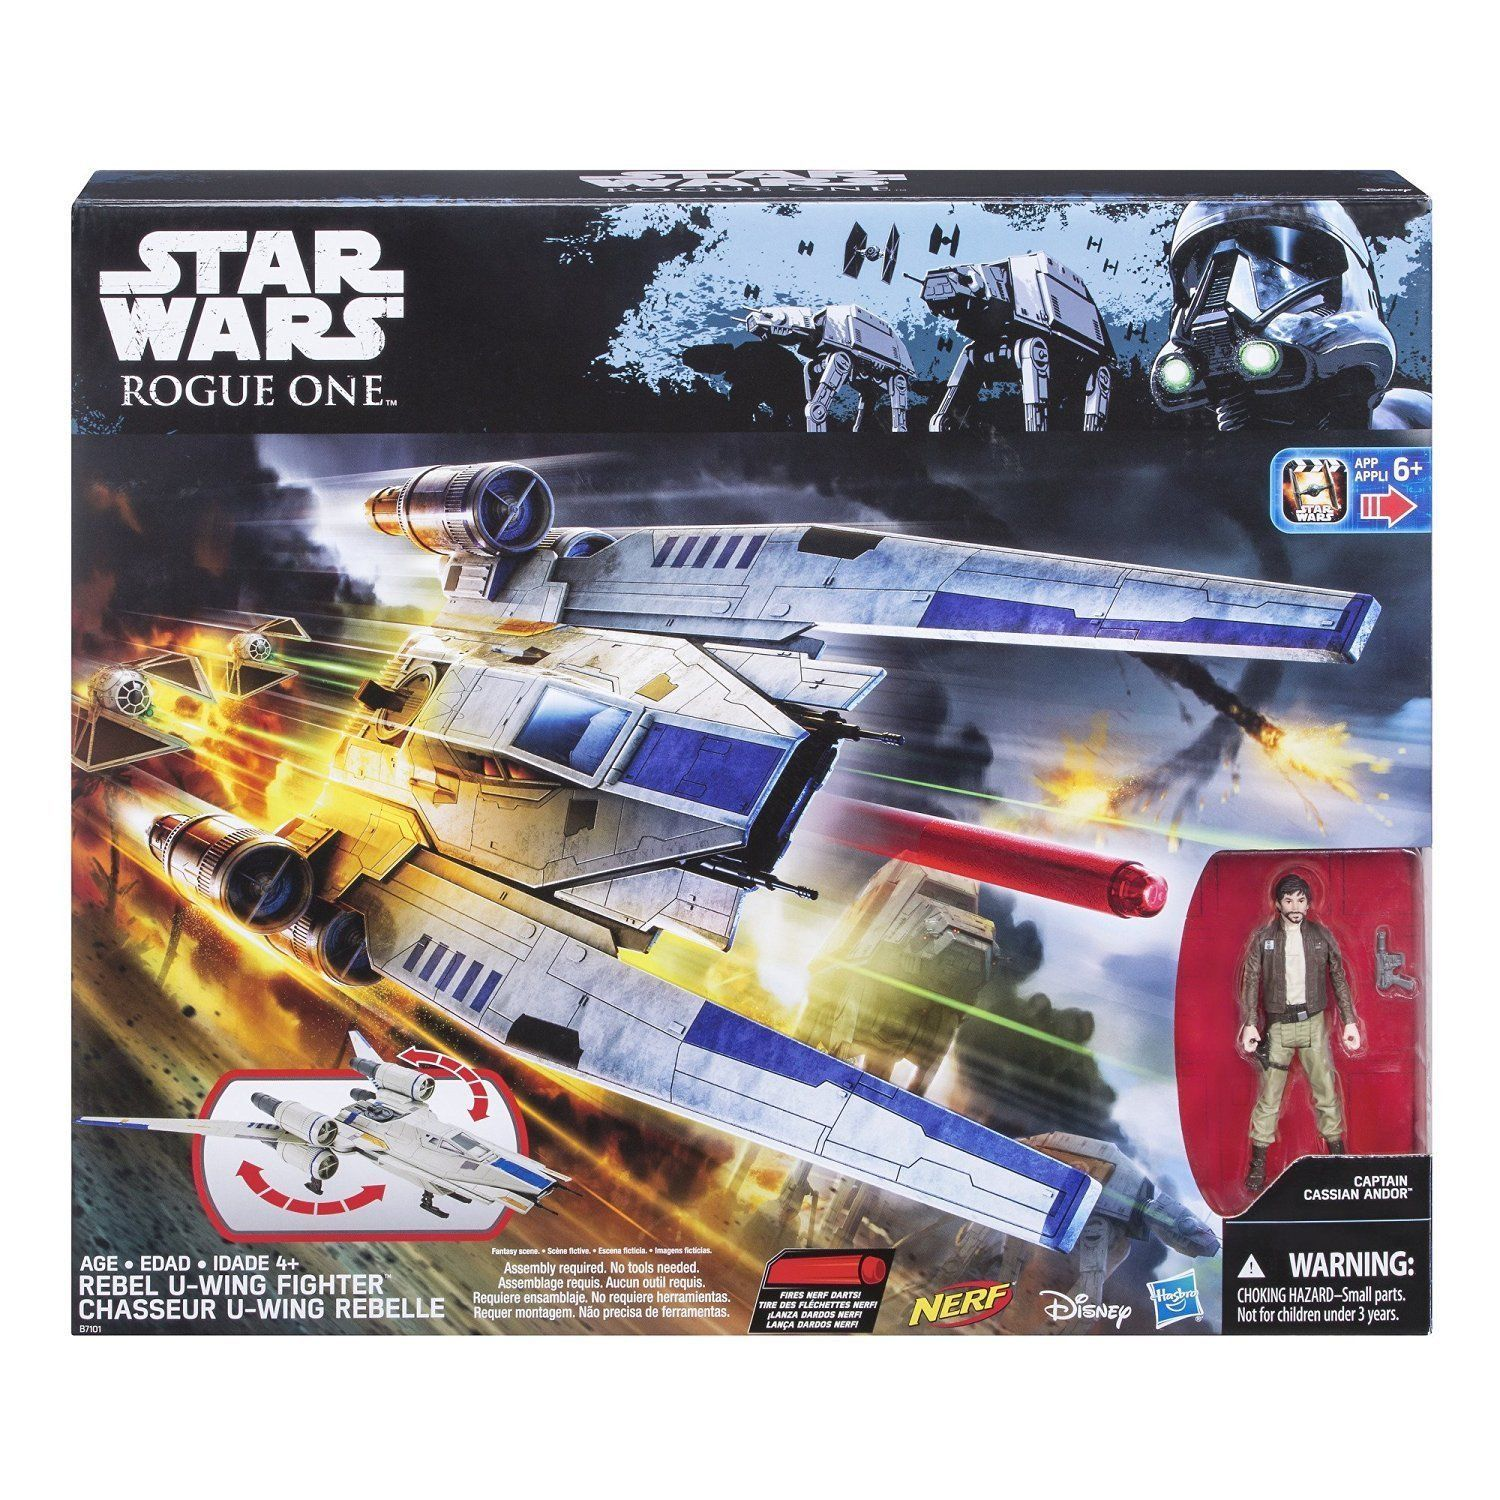 Image 2 of Star Wars Rogue One Rebel U-Wing Fighter Vehicle, Hasbro, 6+